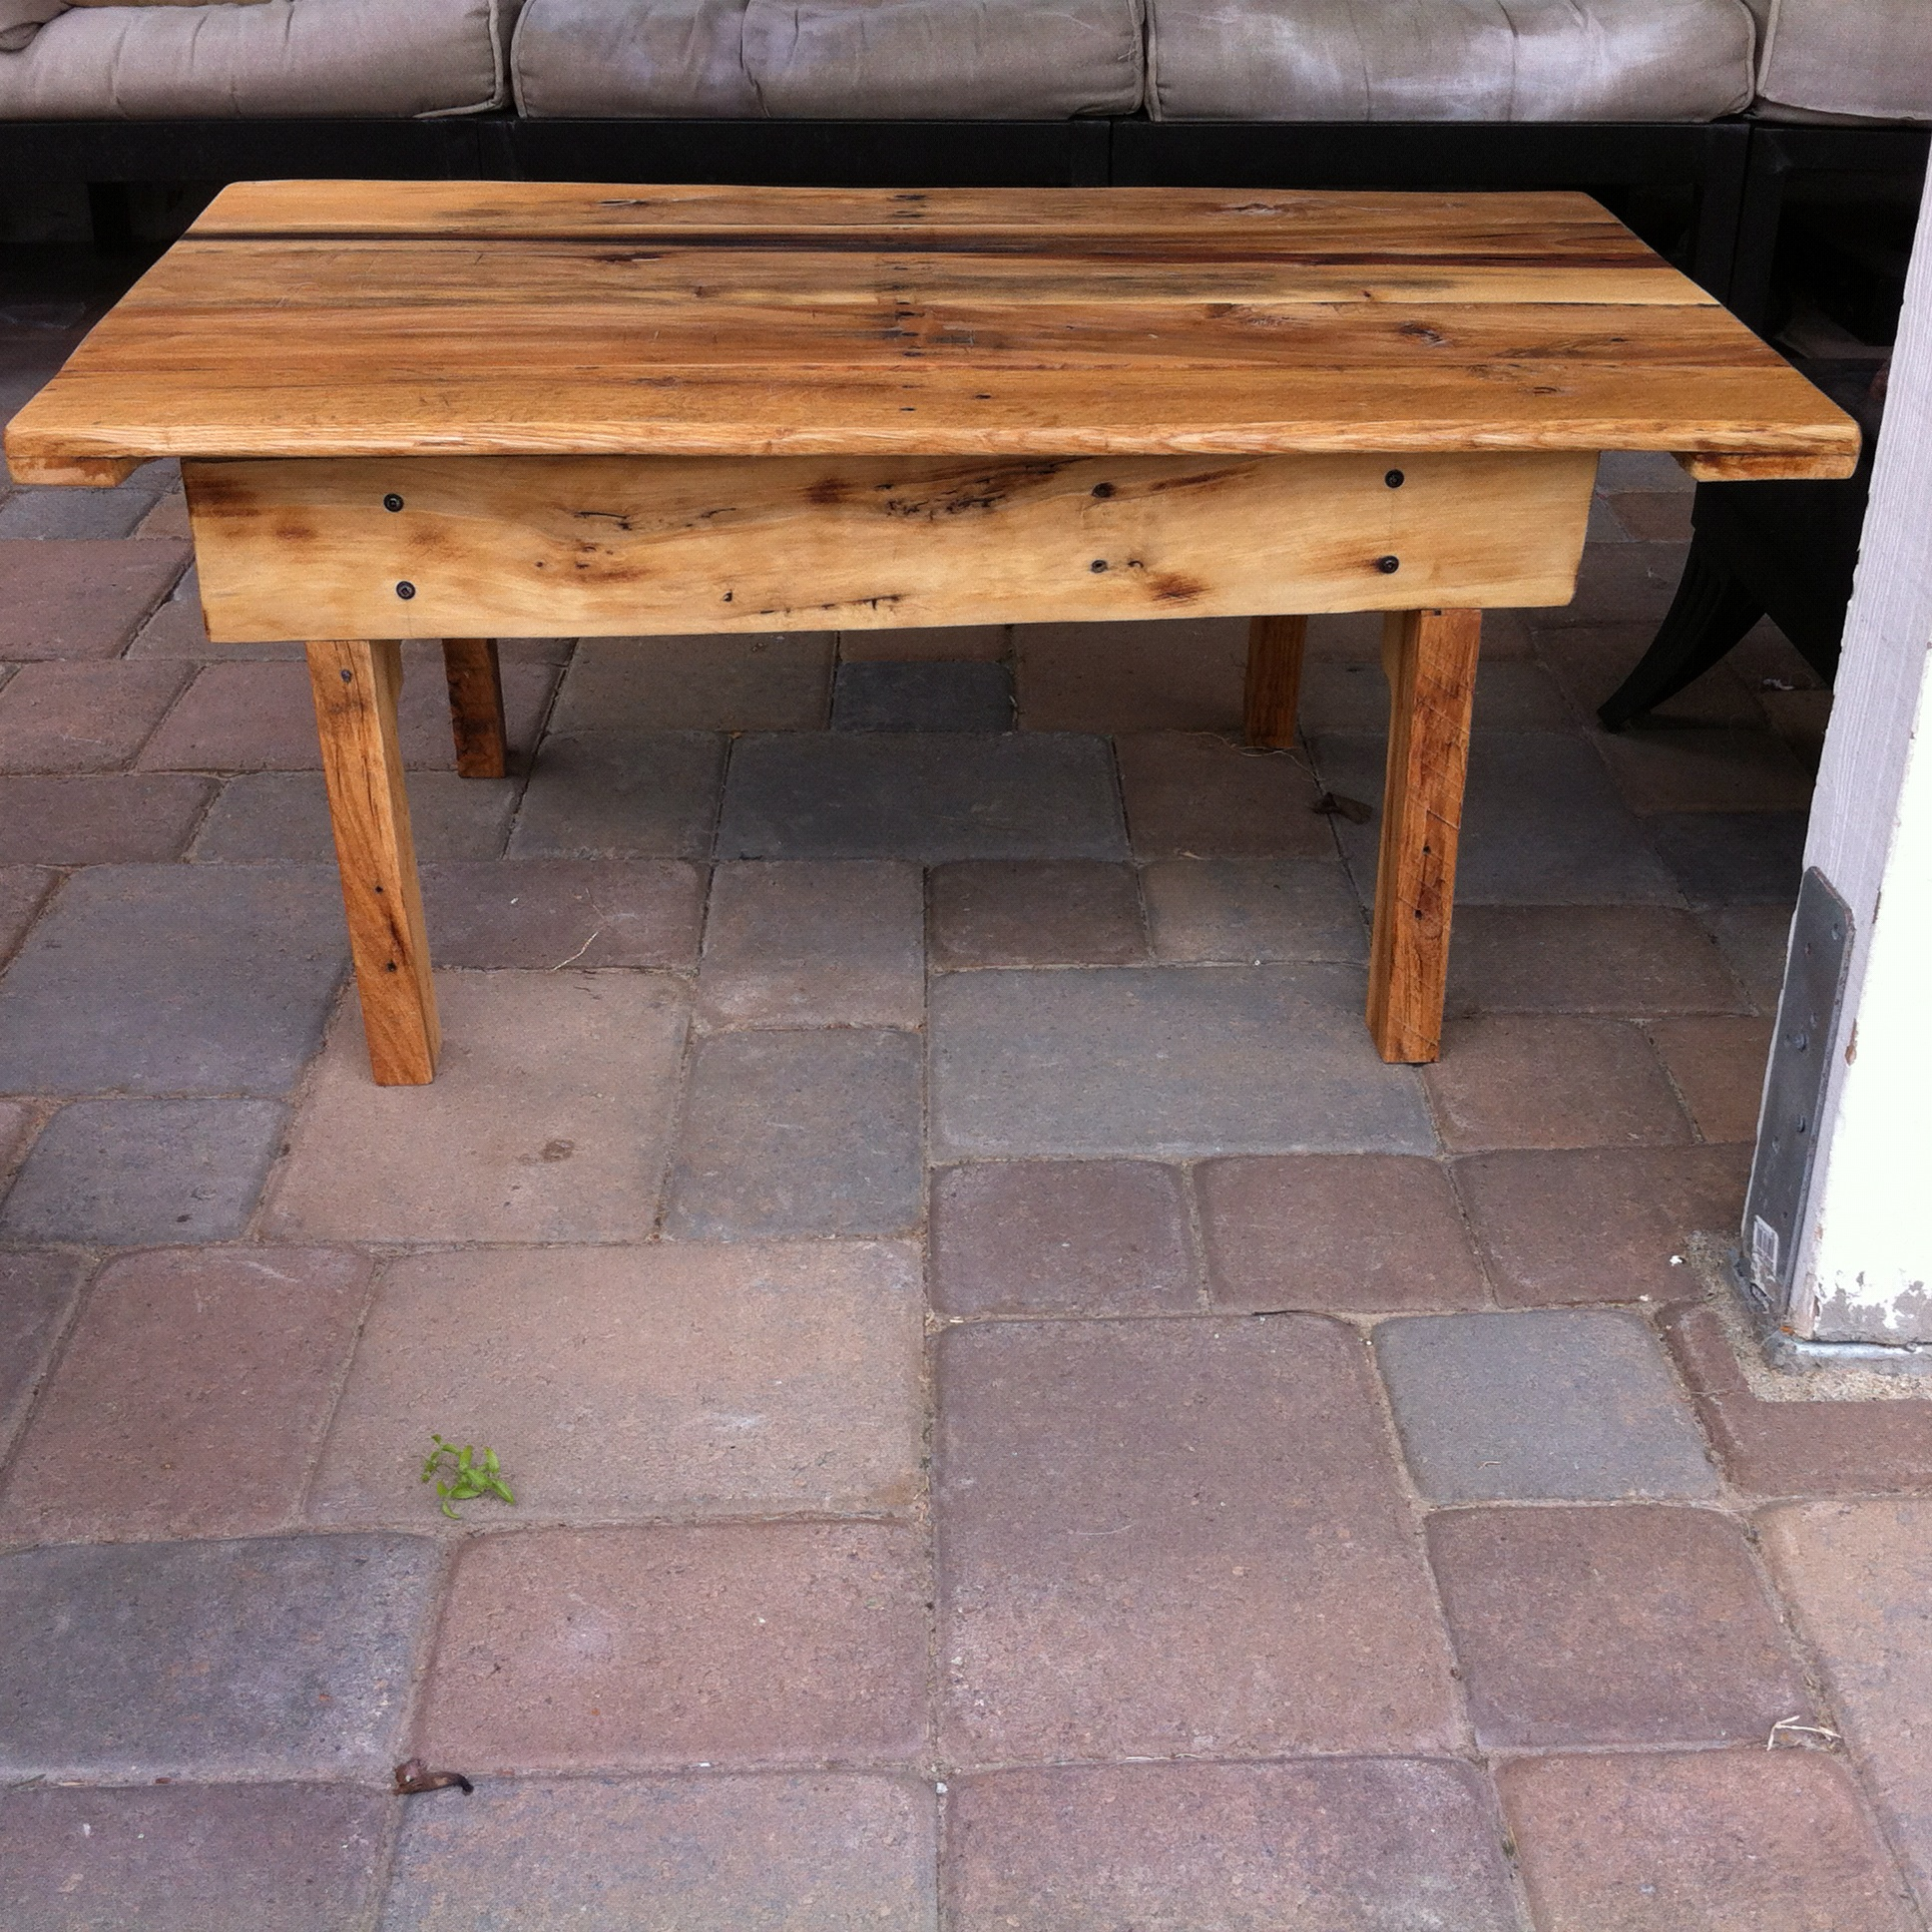 How To Make A Pallet End Table Small coffee or end table.